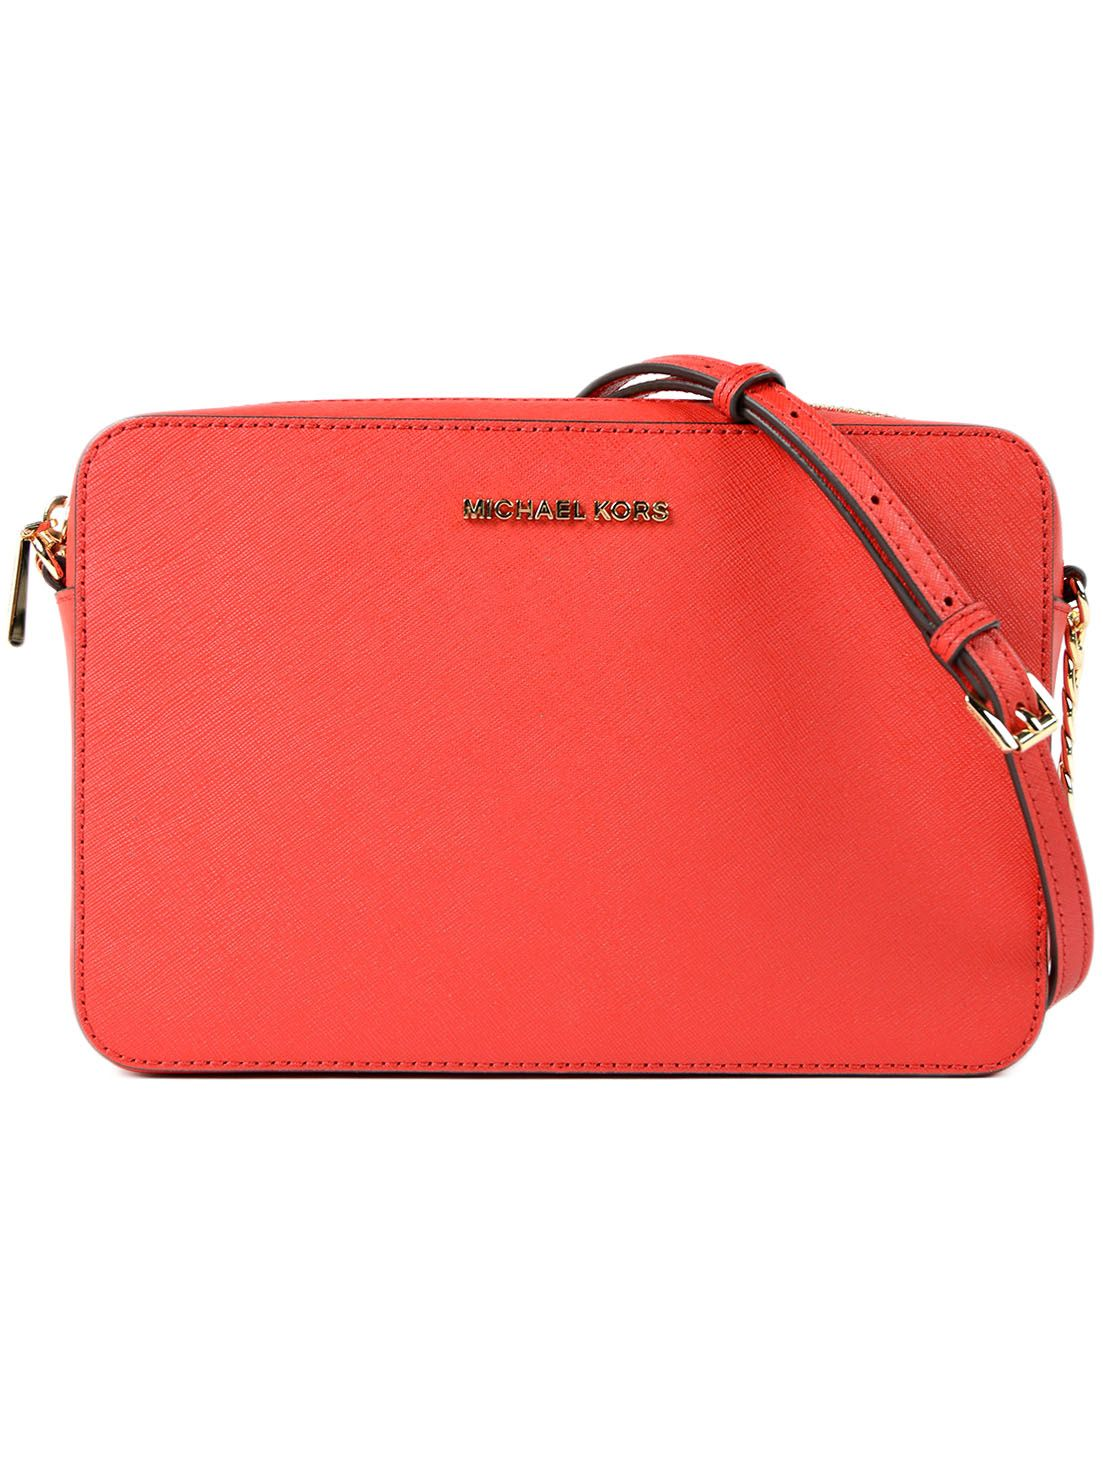 Michael Kors Large Jet Set Crossbody Bag